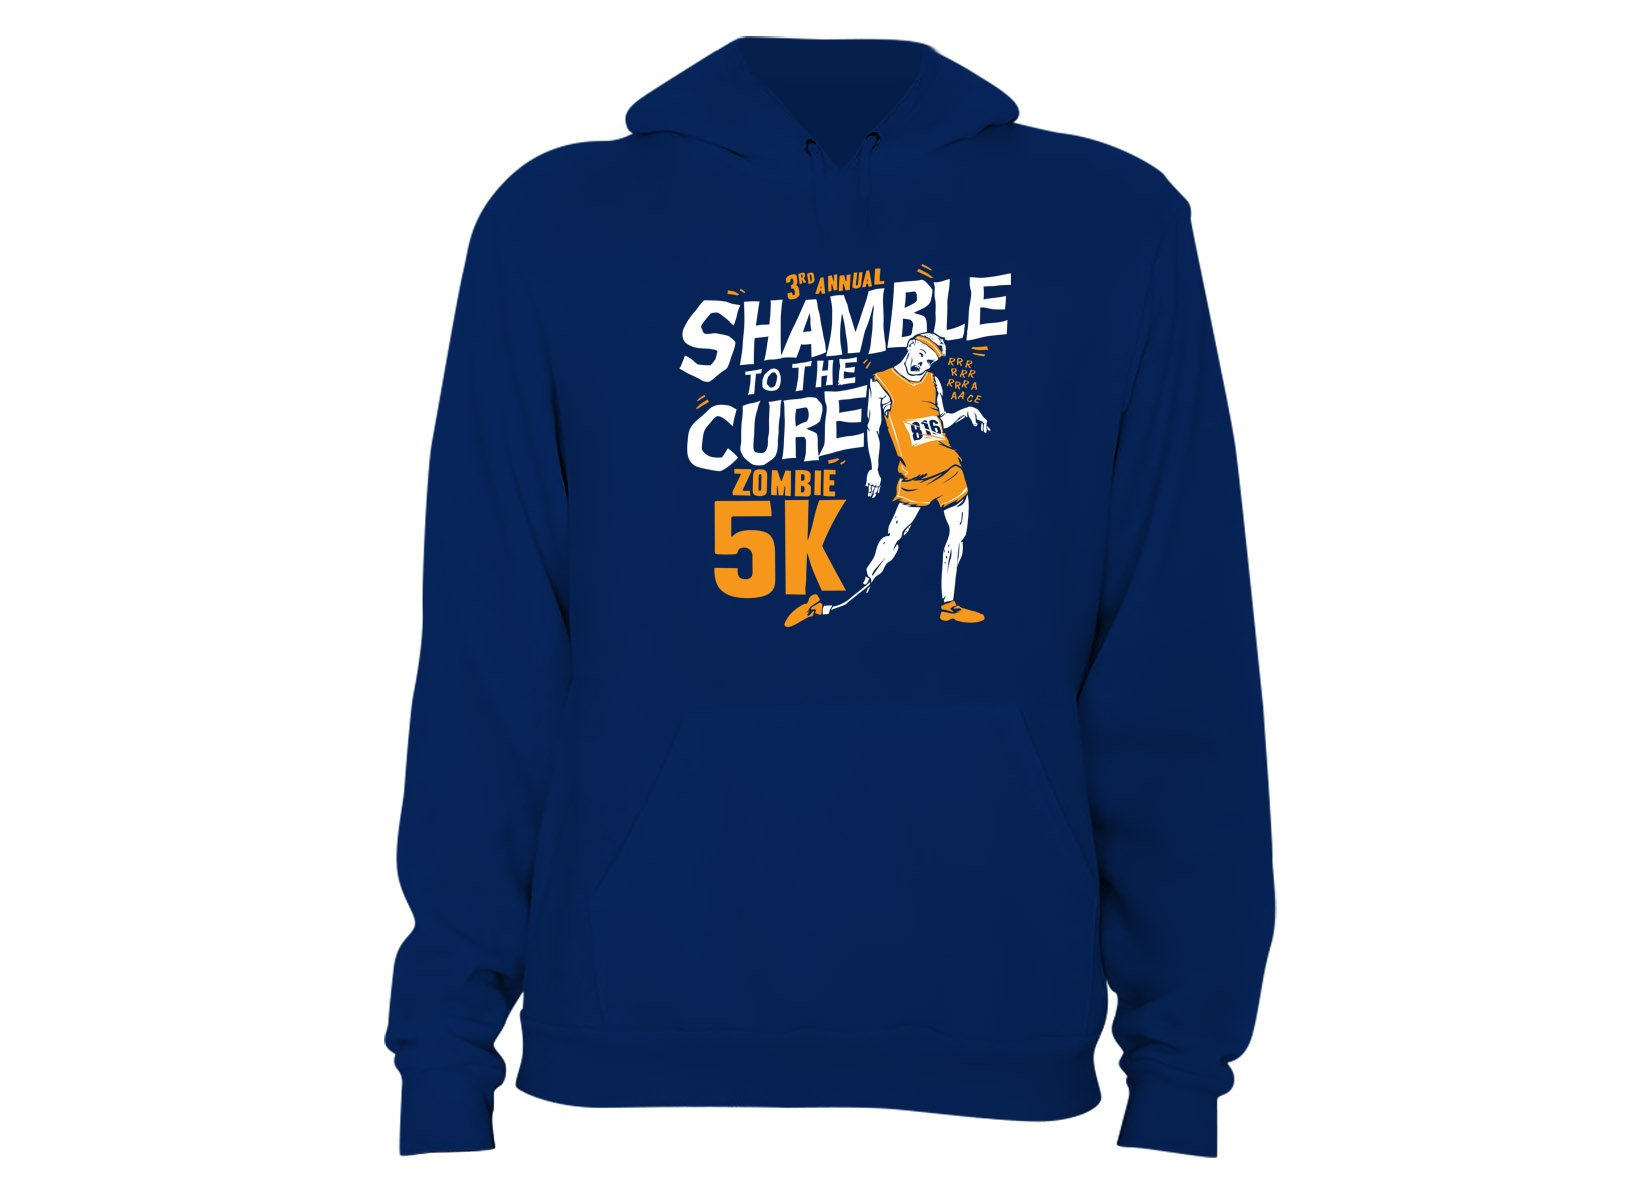 Shamble To The Cure Zombie 5K on Hoodie